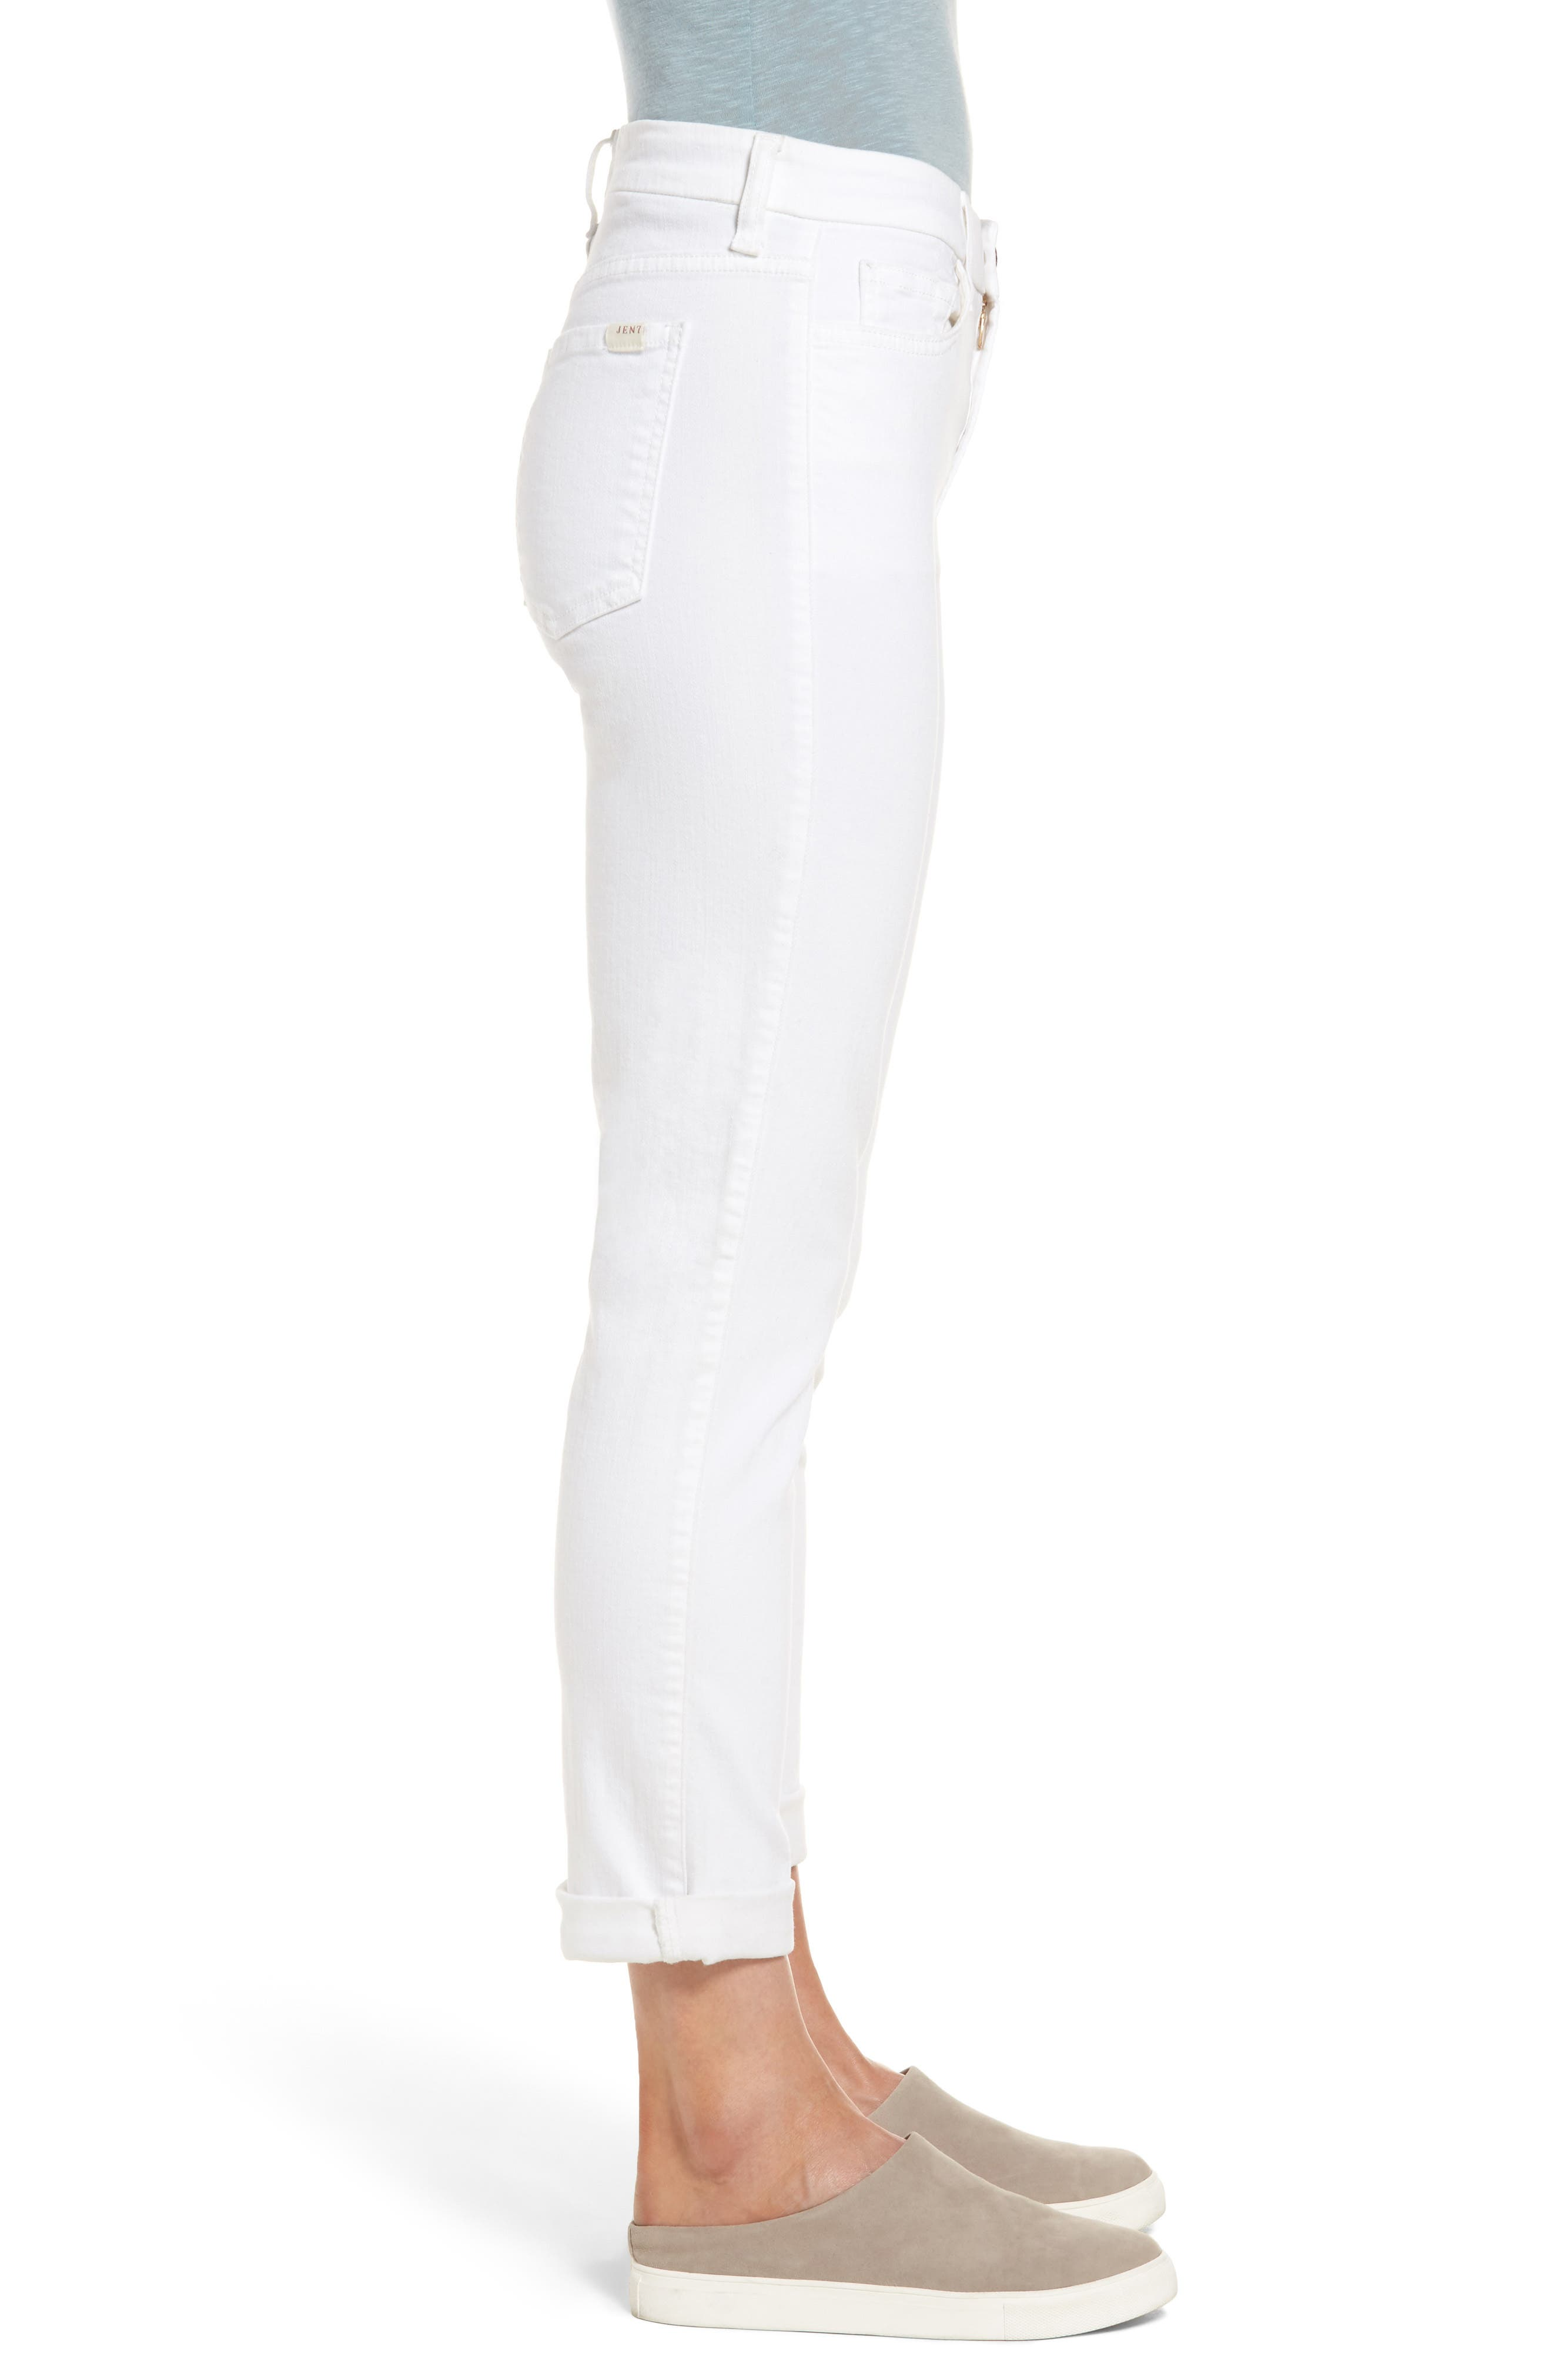 JEN7 BY 7 FOR ALL MANKIND, Stretch Straight Leg Crop Jeans, Alternate thumbnail 3, color, WHITE DENIM